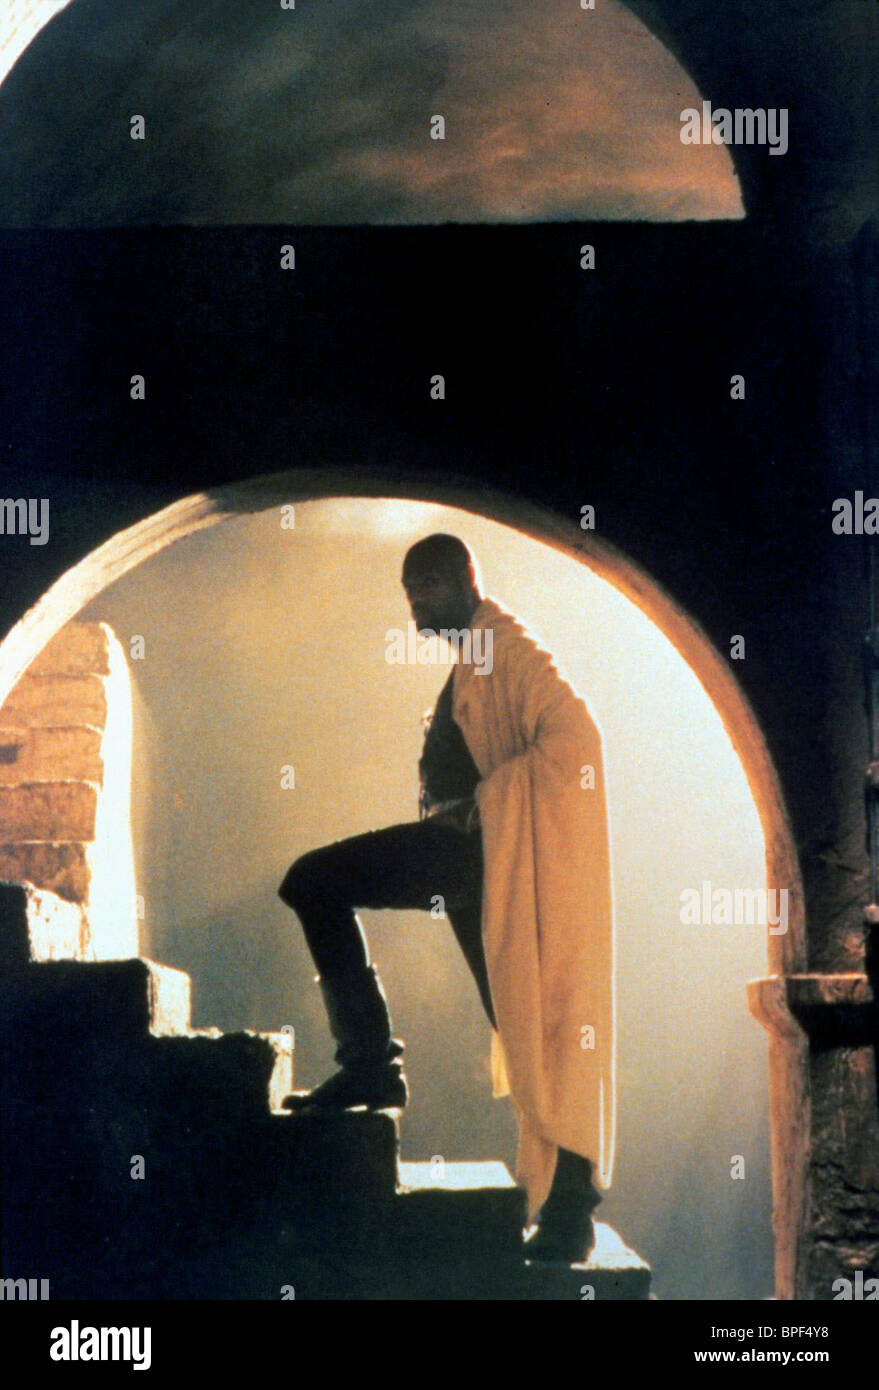 LAURENCE FISHBURNE OTHELLO (1995) Stock Photo